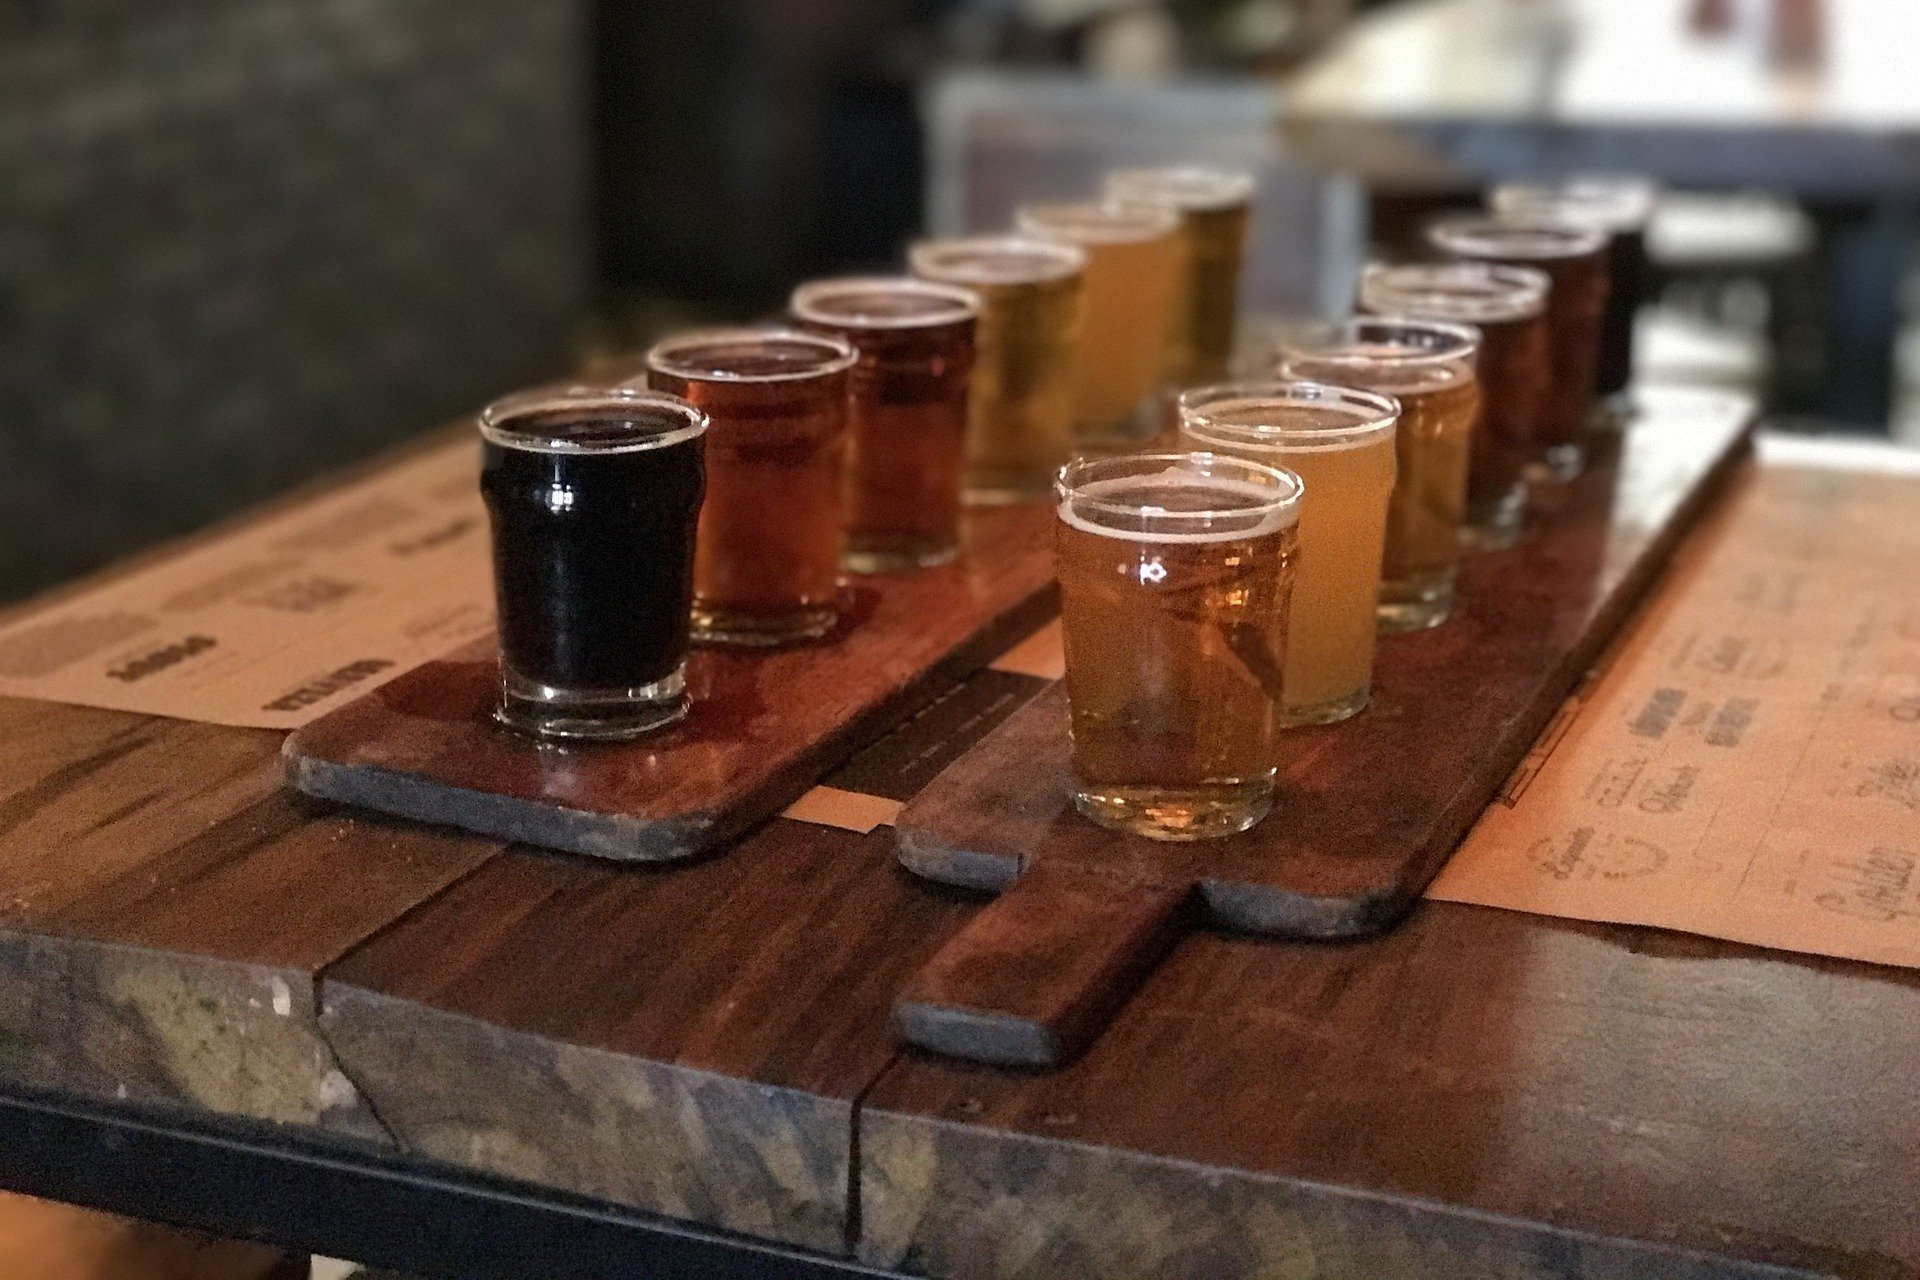 beer tasting with several types